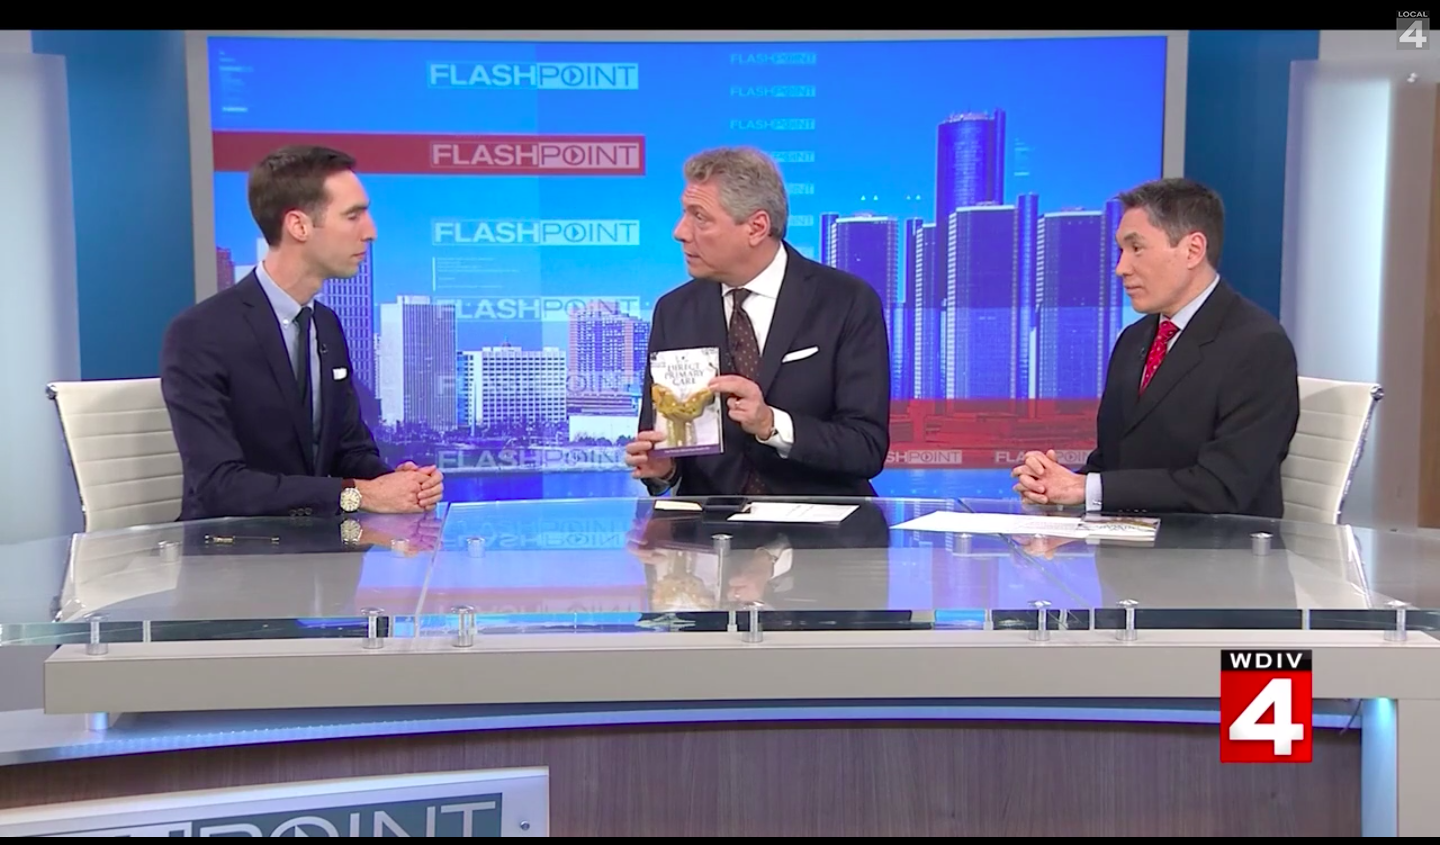 2018 Paul Thomas MD on Flashpoint on WDIV with Devin Scillian and Frank McGeorge 04.png